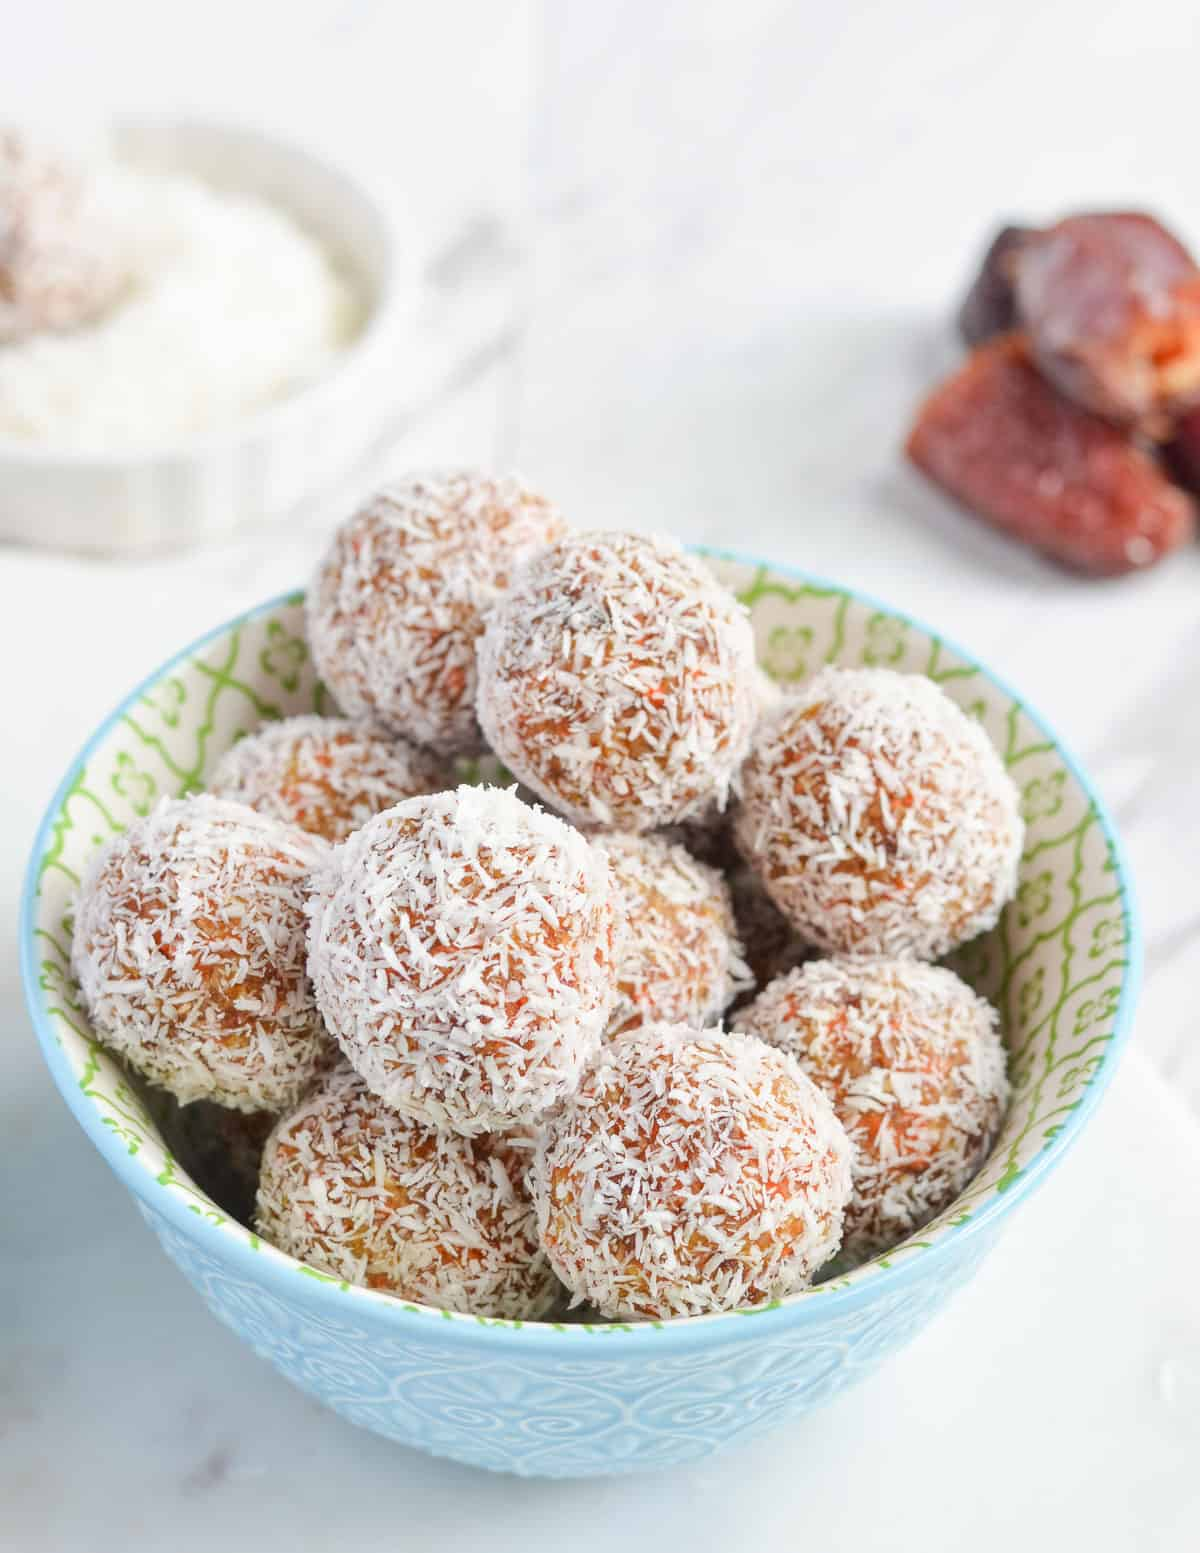 close up click of bliss balls, dry coconut & dates are behind the bowl.